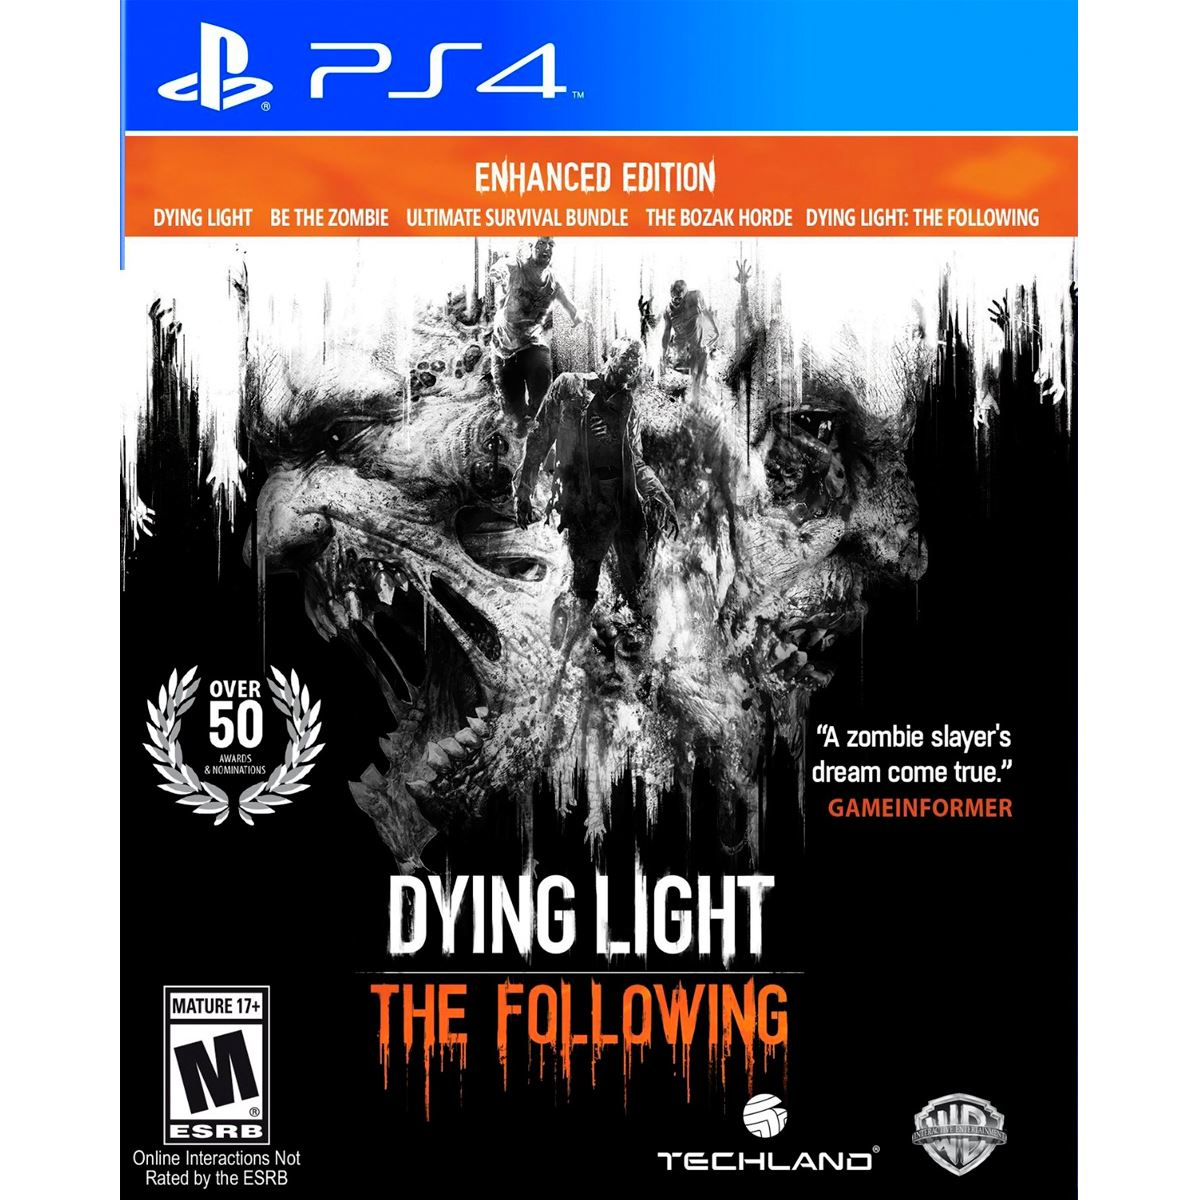 PS4 Dying Light The Following Enhan